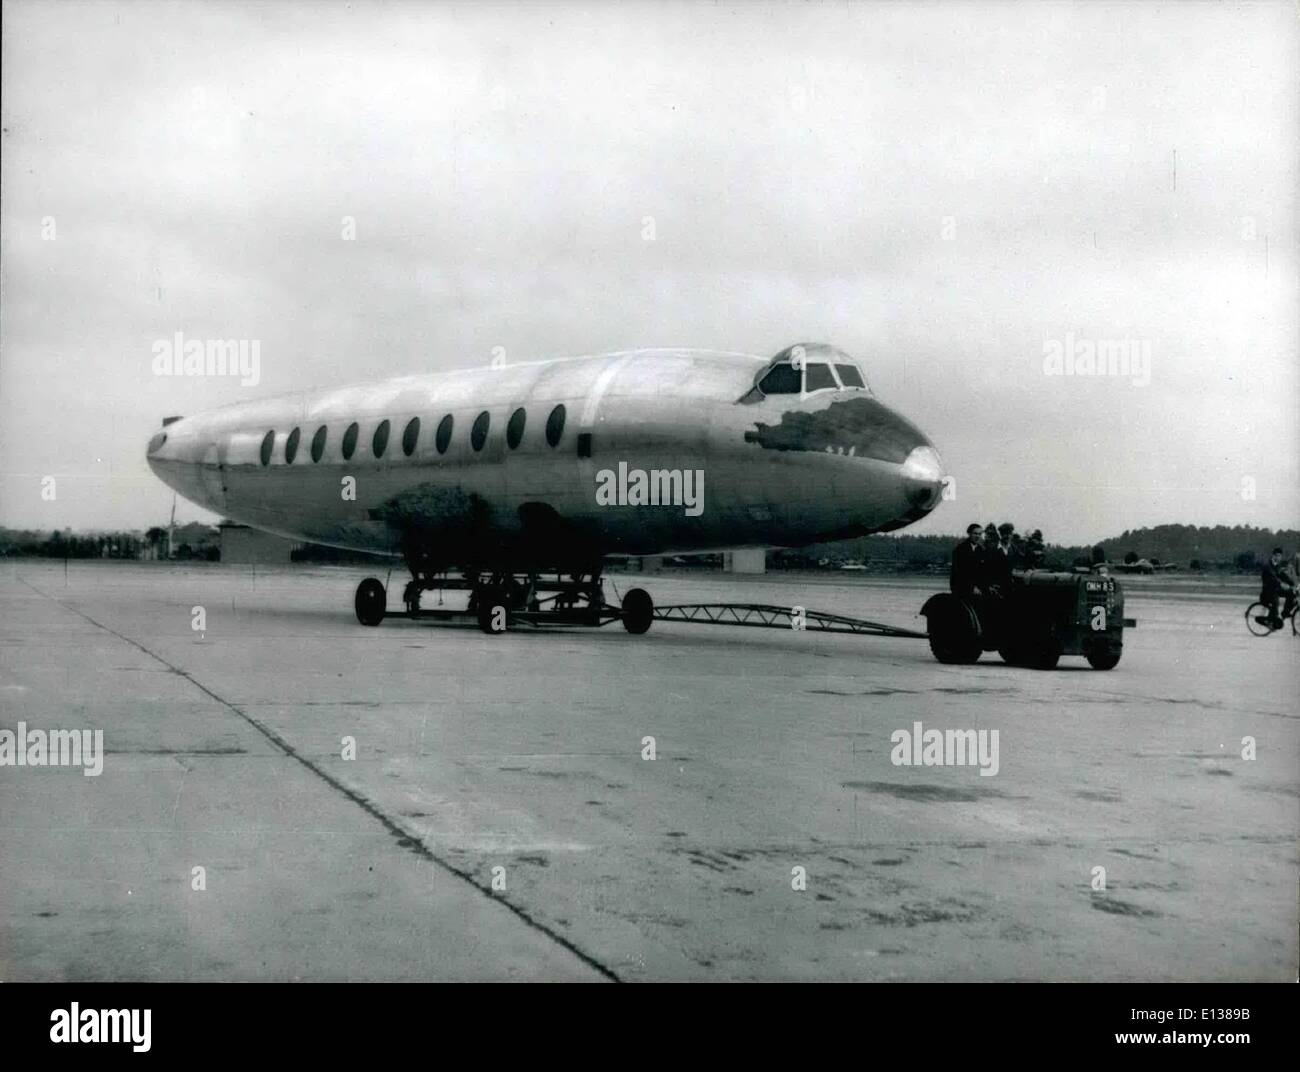 Feb. 29, 2012 - Producing The Vickers Viscount: Looking like an enormous seal the body of a Viscount is transferred - Stock Image